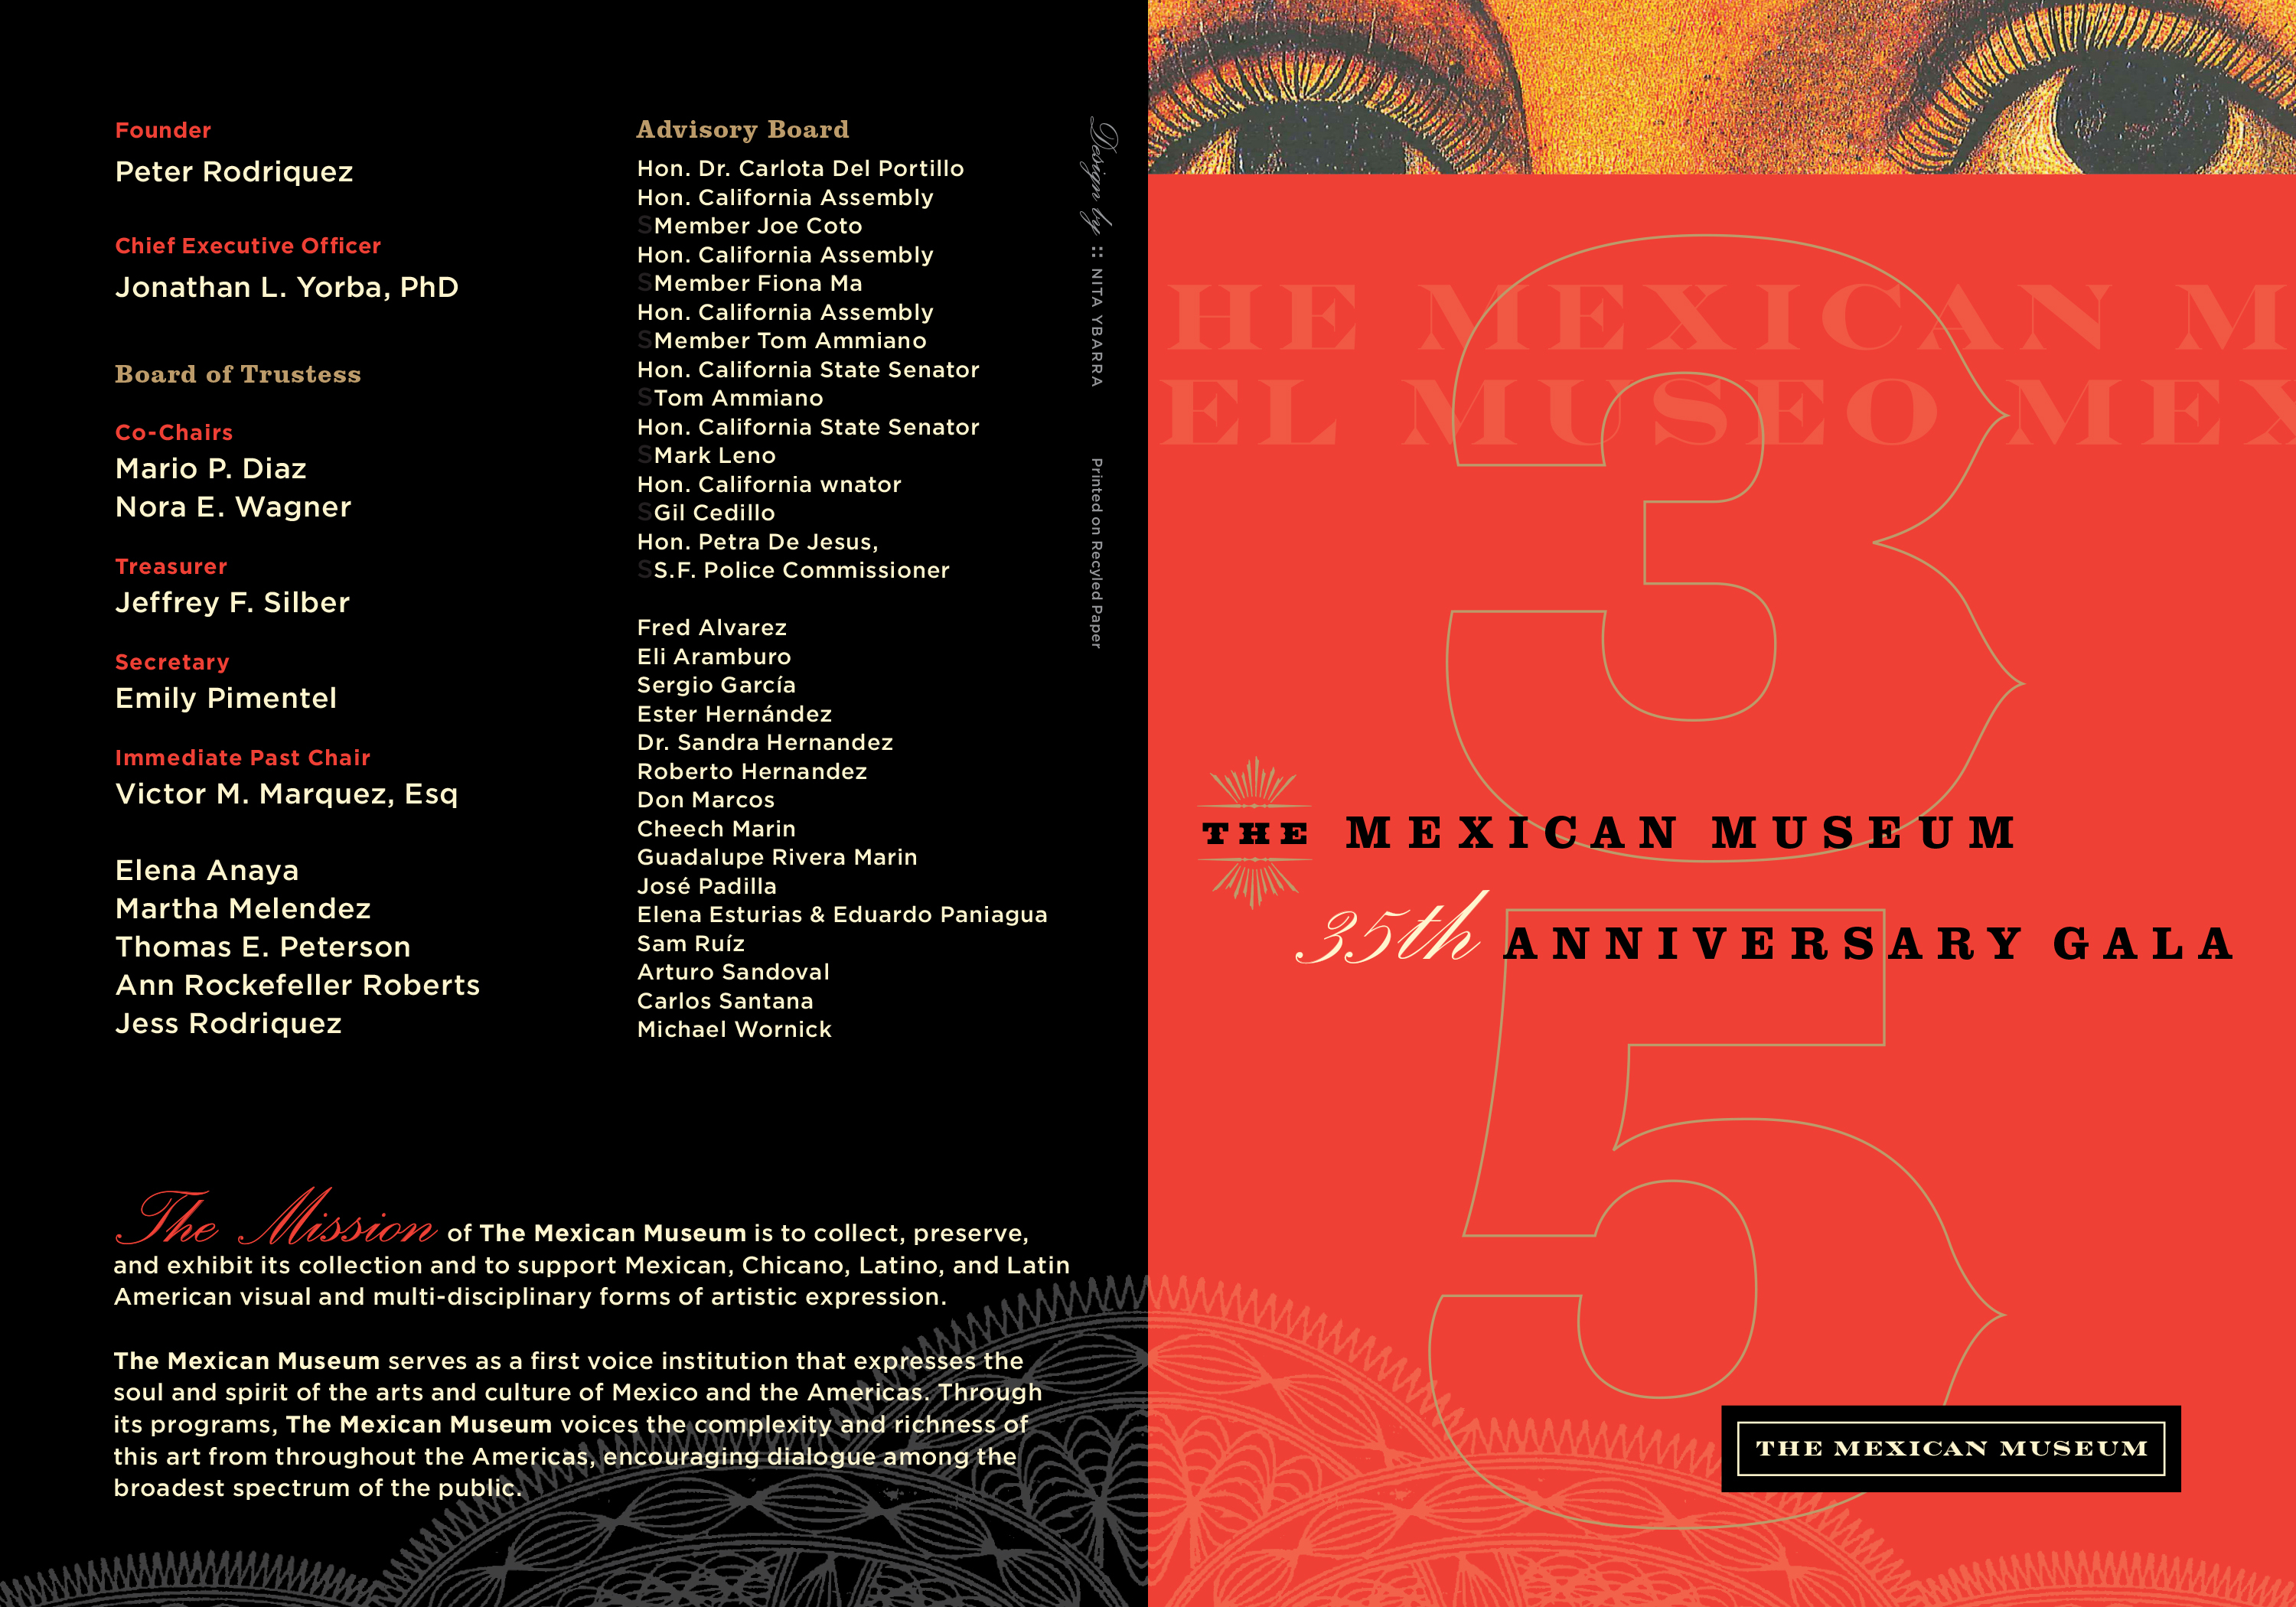 The Mexican Museum 35th Anniversary Gala - NYDesign/SF